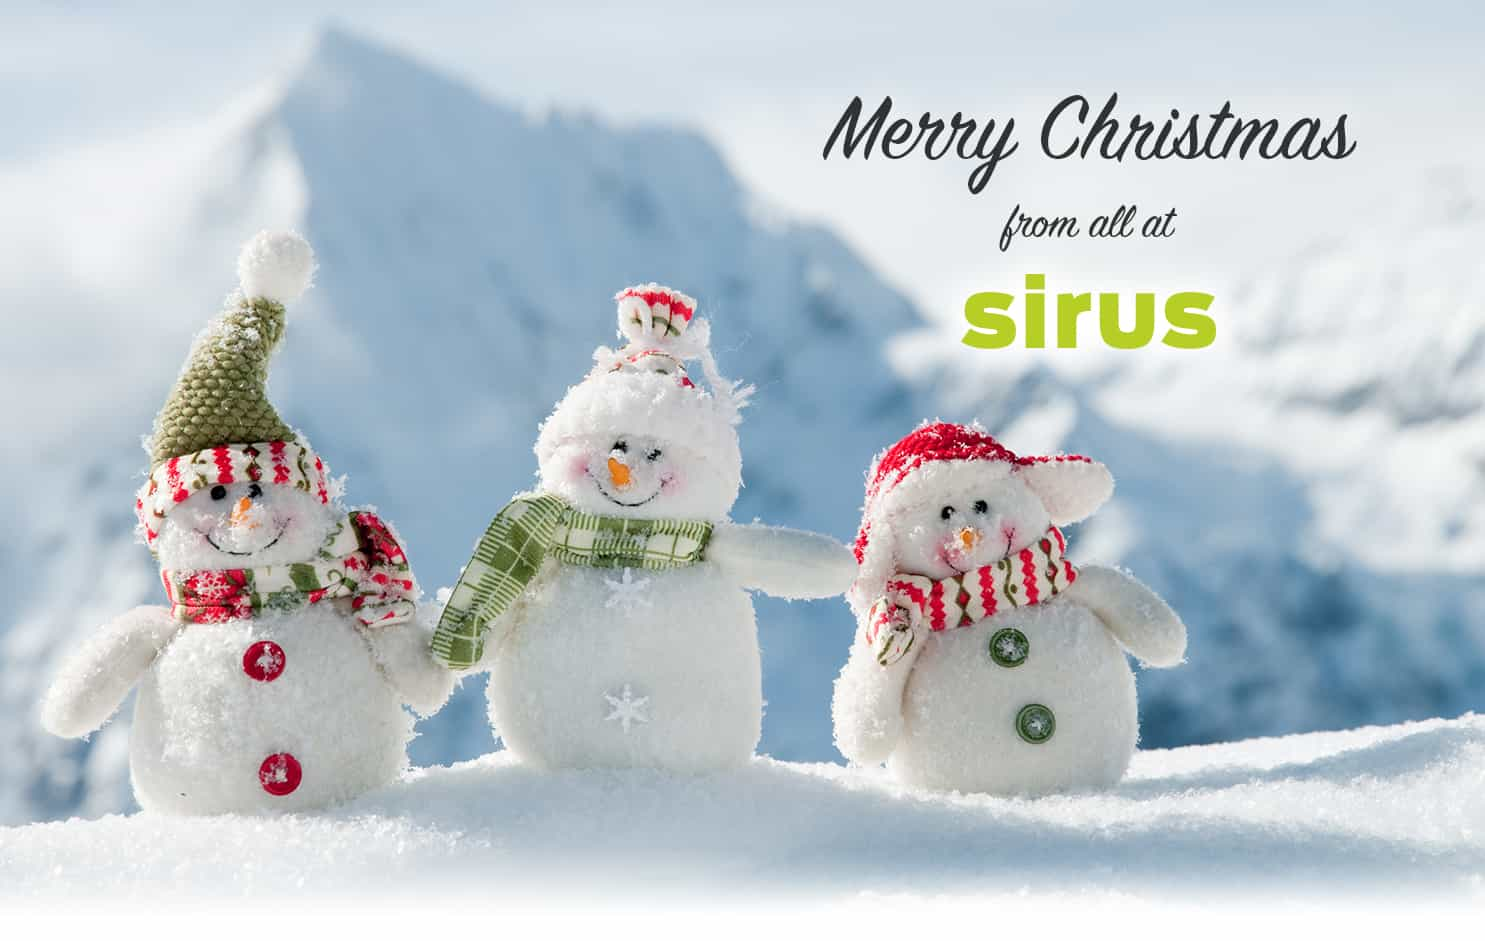 Merry Christmas from all at Sirus